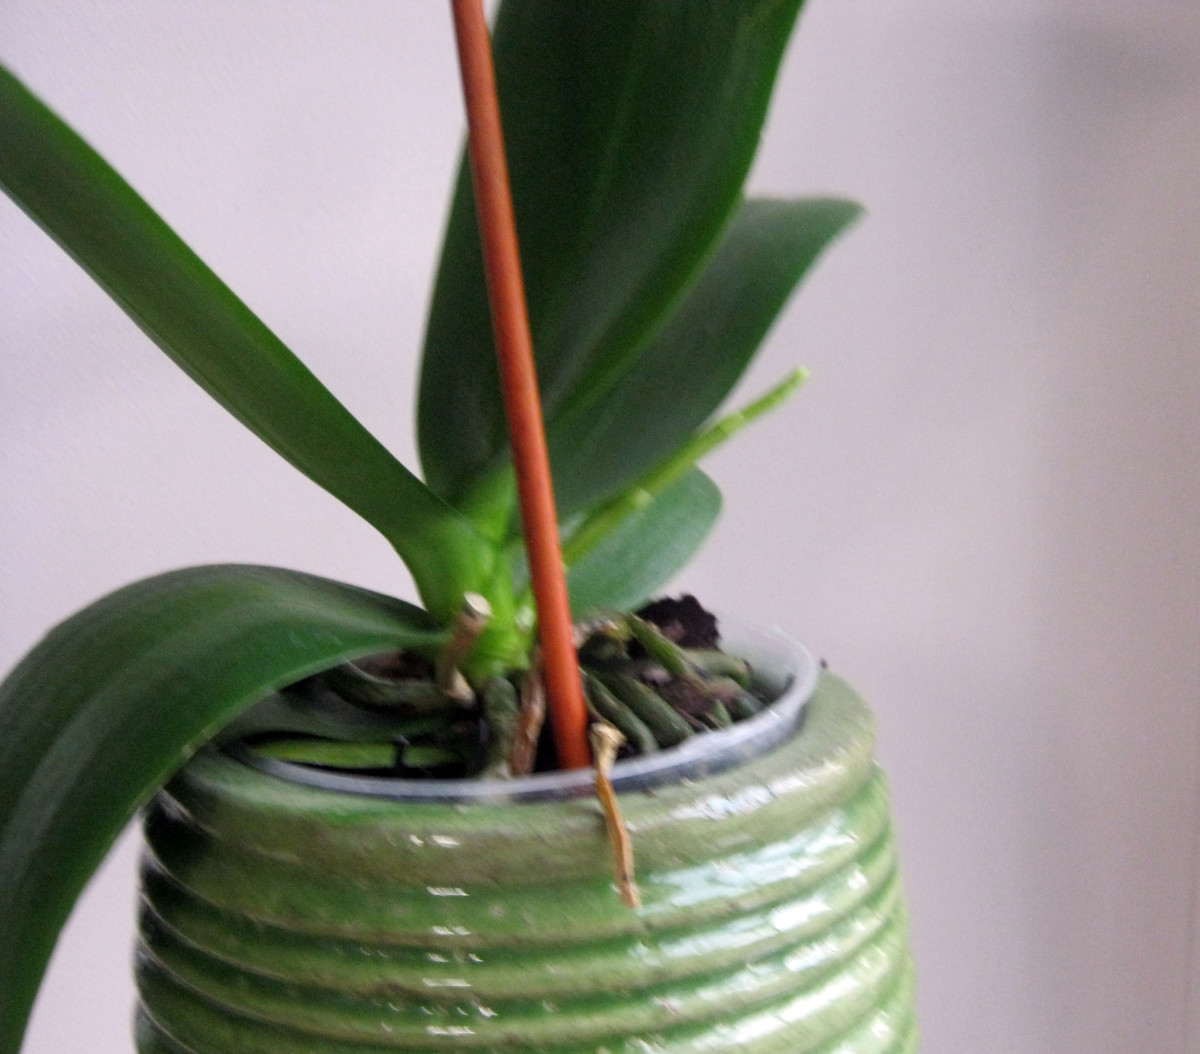 See the new spike growing from the right side of the plant.